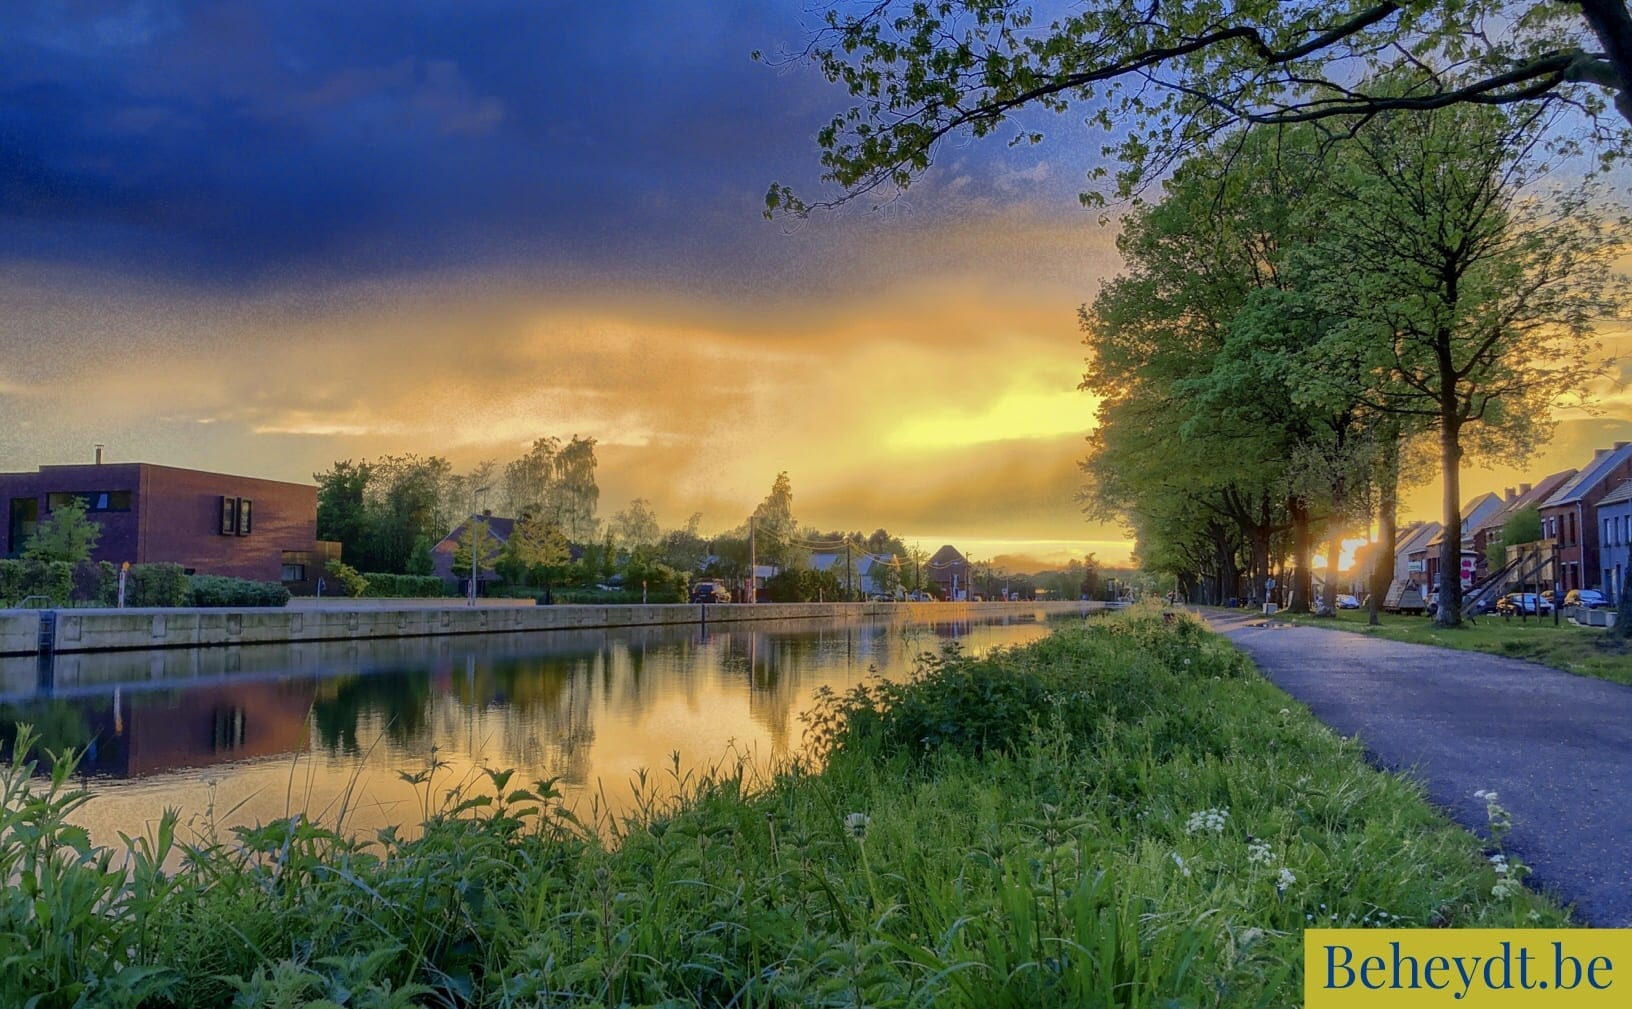 Colorful and dramatic sunrise or sunset over a Countryside river landscape seen from the riverside